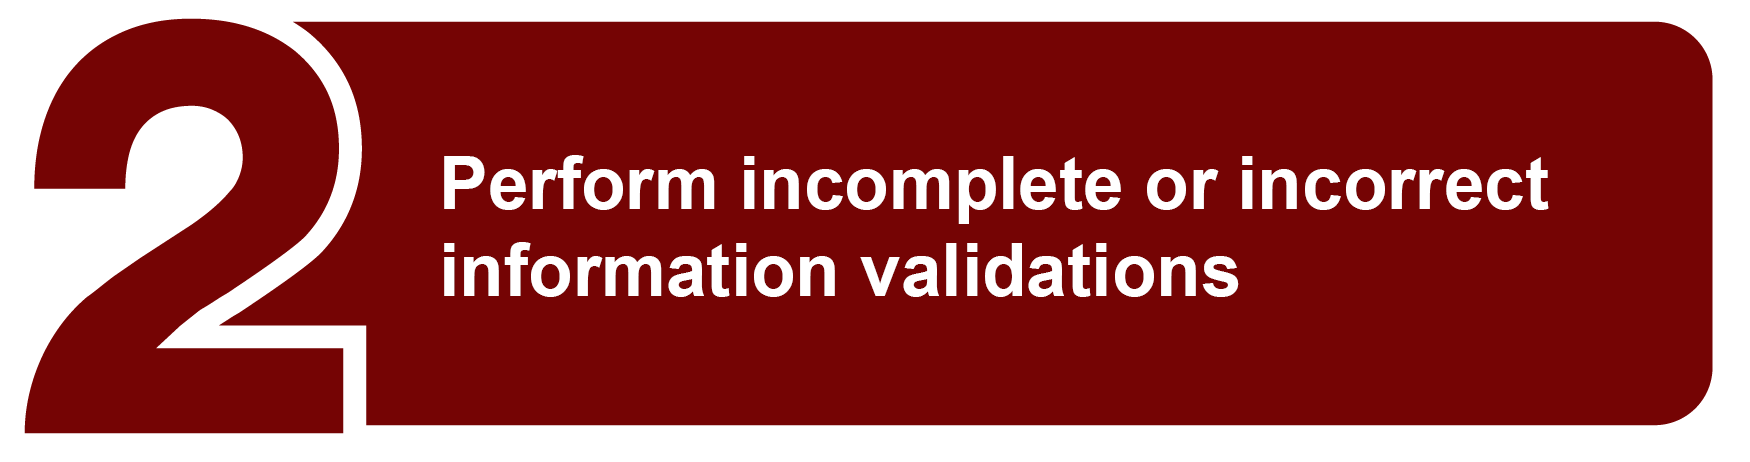 Perform incomplete or incorrect information validations